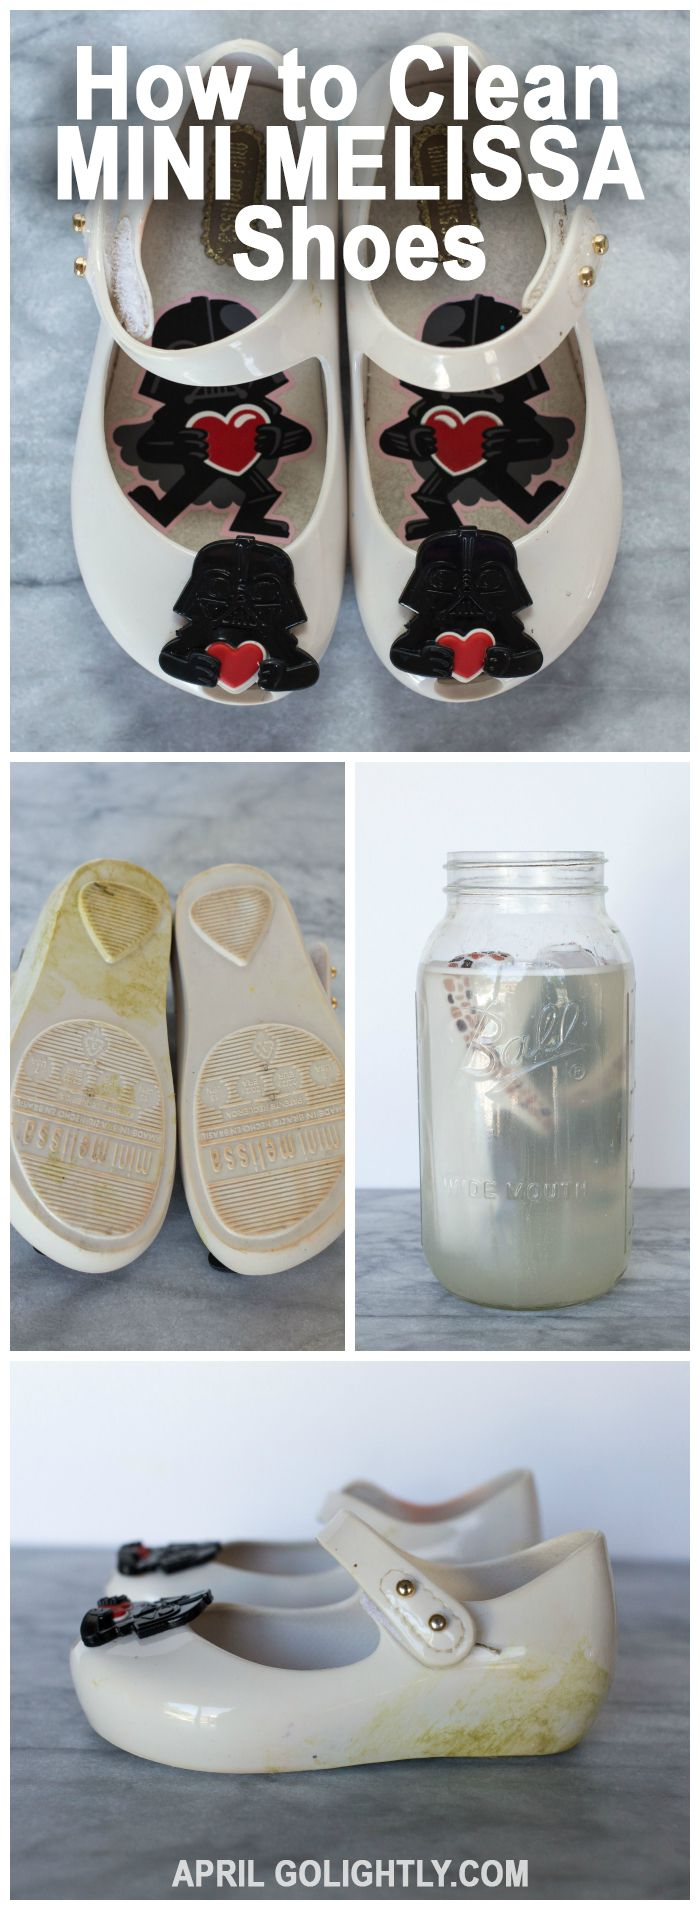 How to Clean Mini Melissa Shoes - cleaning your toddler bow jelly sandals to make them fabulous again